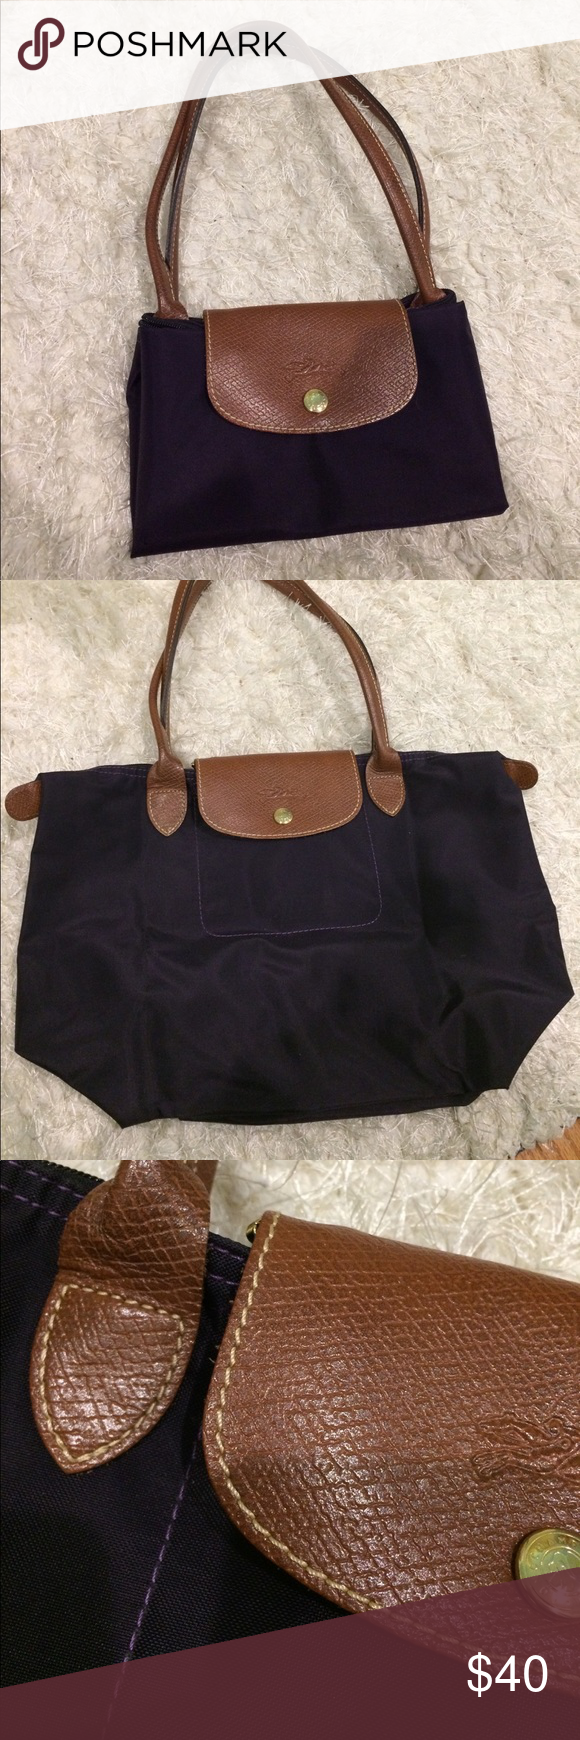 LONGCHAMP purple tote LONGCHAMP. Gently used. Purple. Purchased in France. Longchamp  Bags c8539176ab